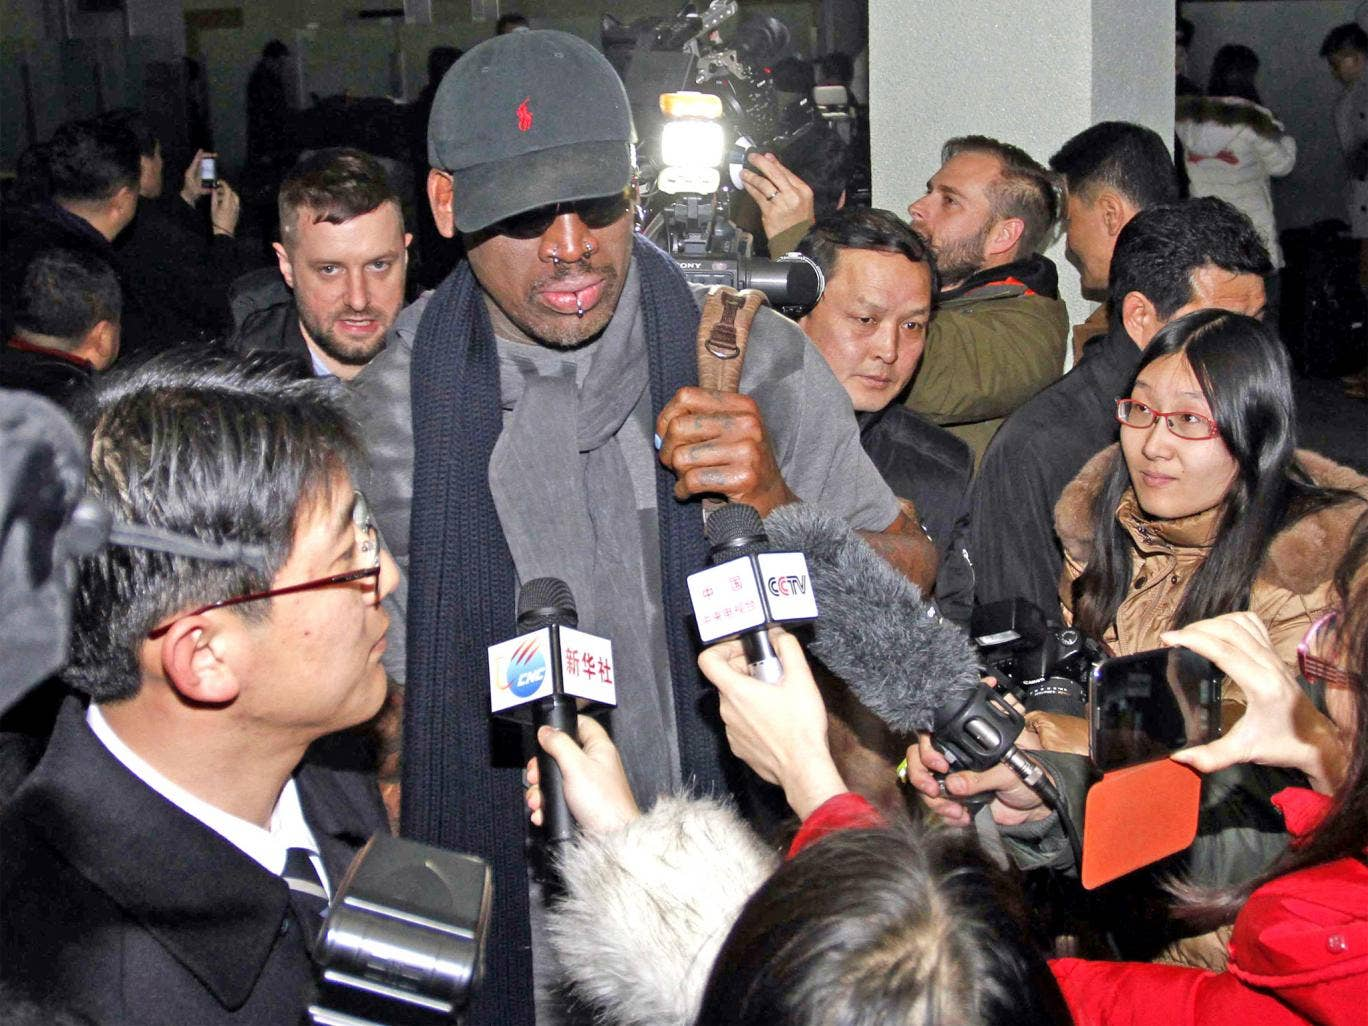 The former NBA star Dennis Rodman arrives in Pyongyang yesterday